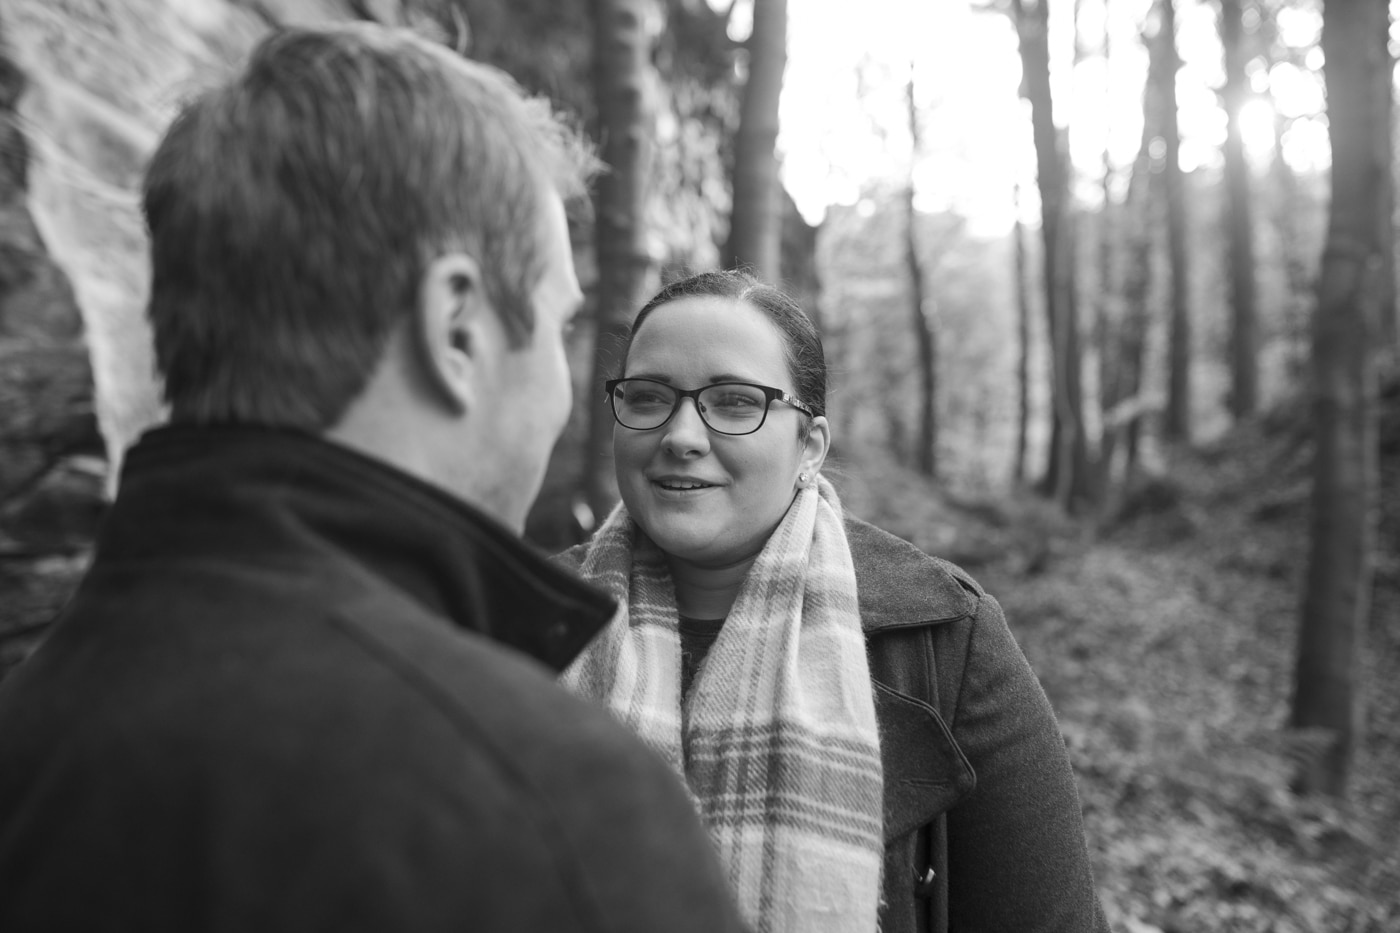 Man and woman in glasses and scarf looking at each other in woods by Joshua Wyborn